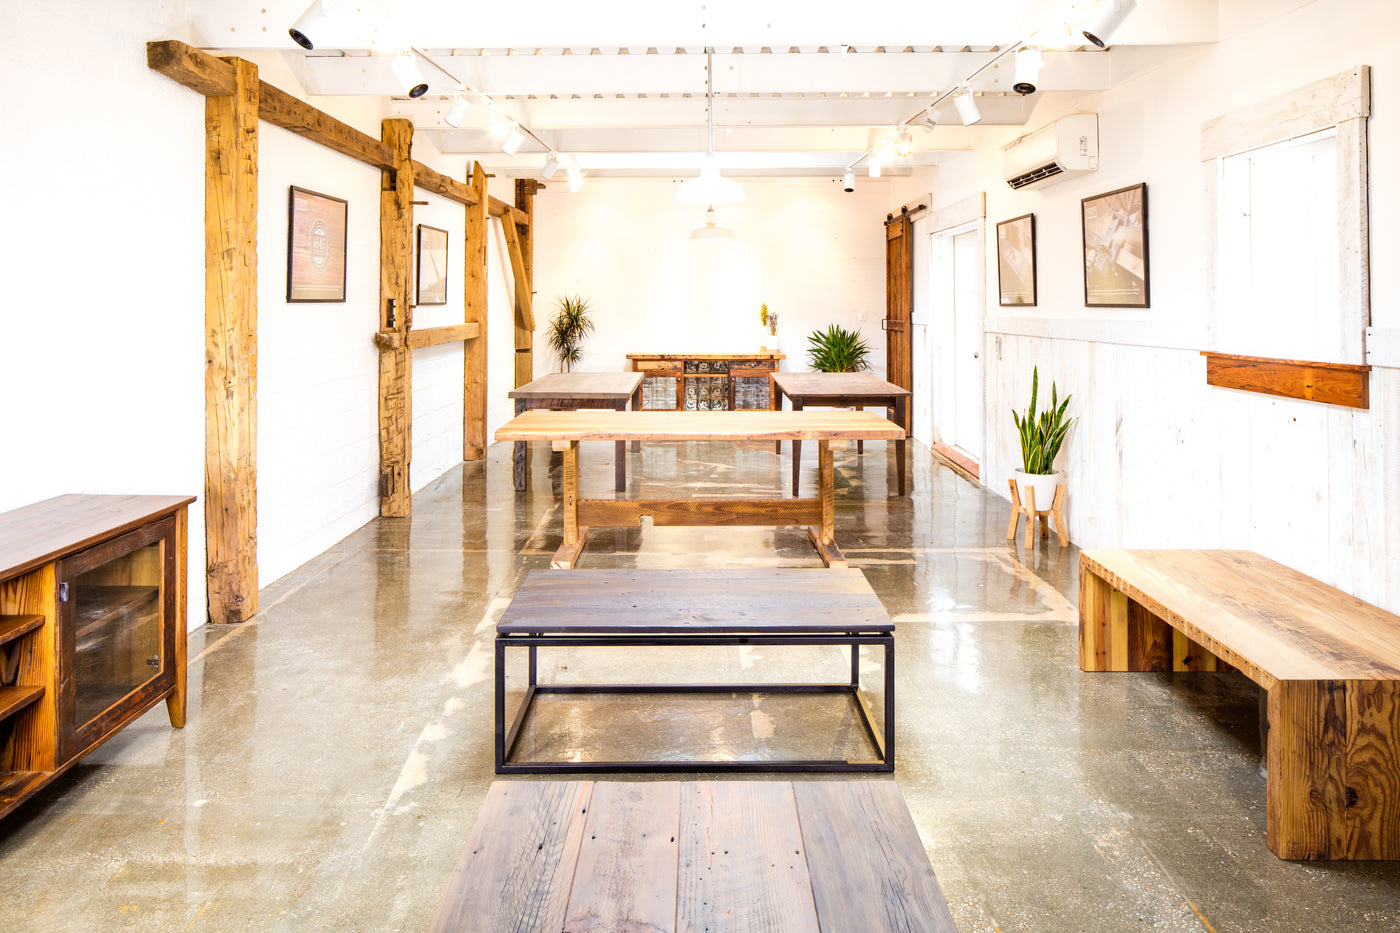 Sandtown Furniture Co. | Reclaimed Wood Furniture